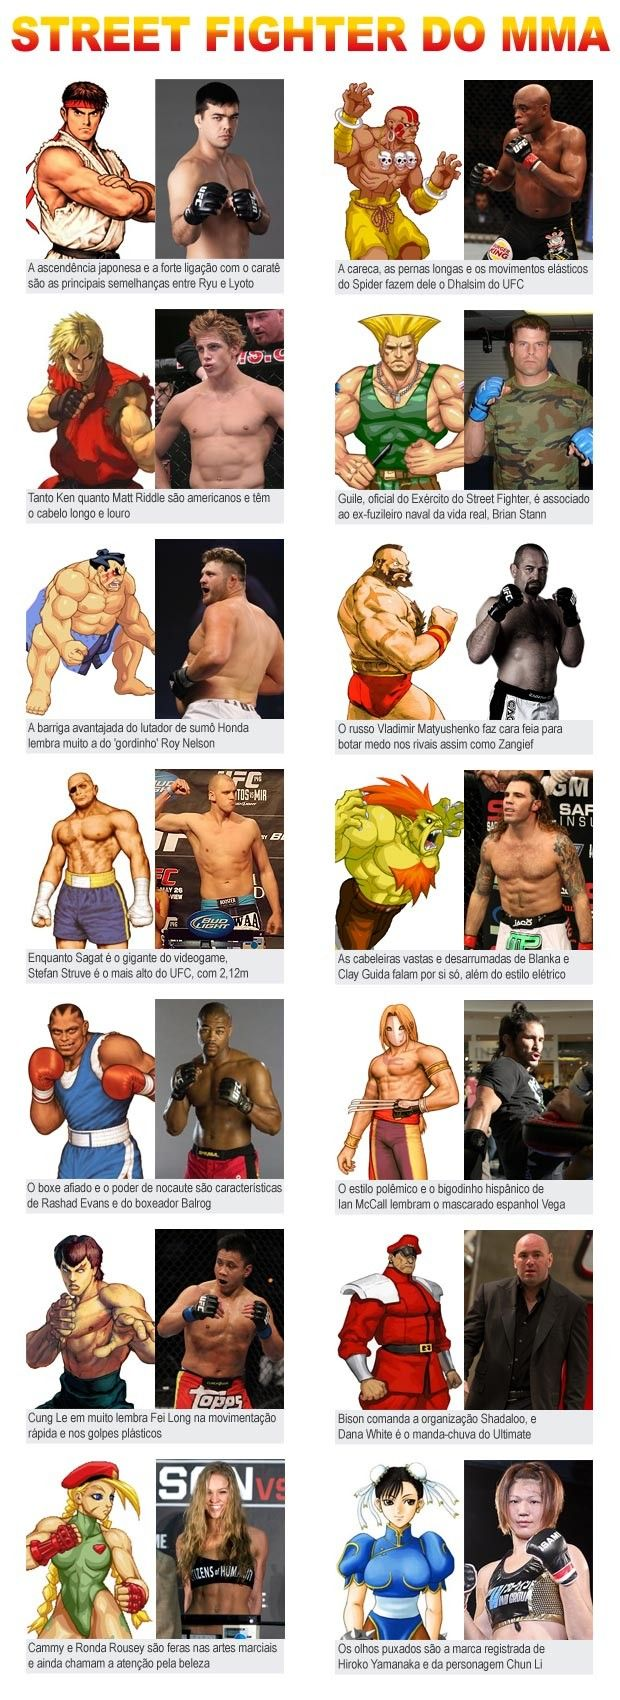 Street Fighter do MMA legendas 2 (Foto: Editoria de Arte / Globoesporte.com)